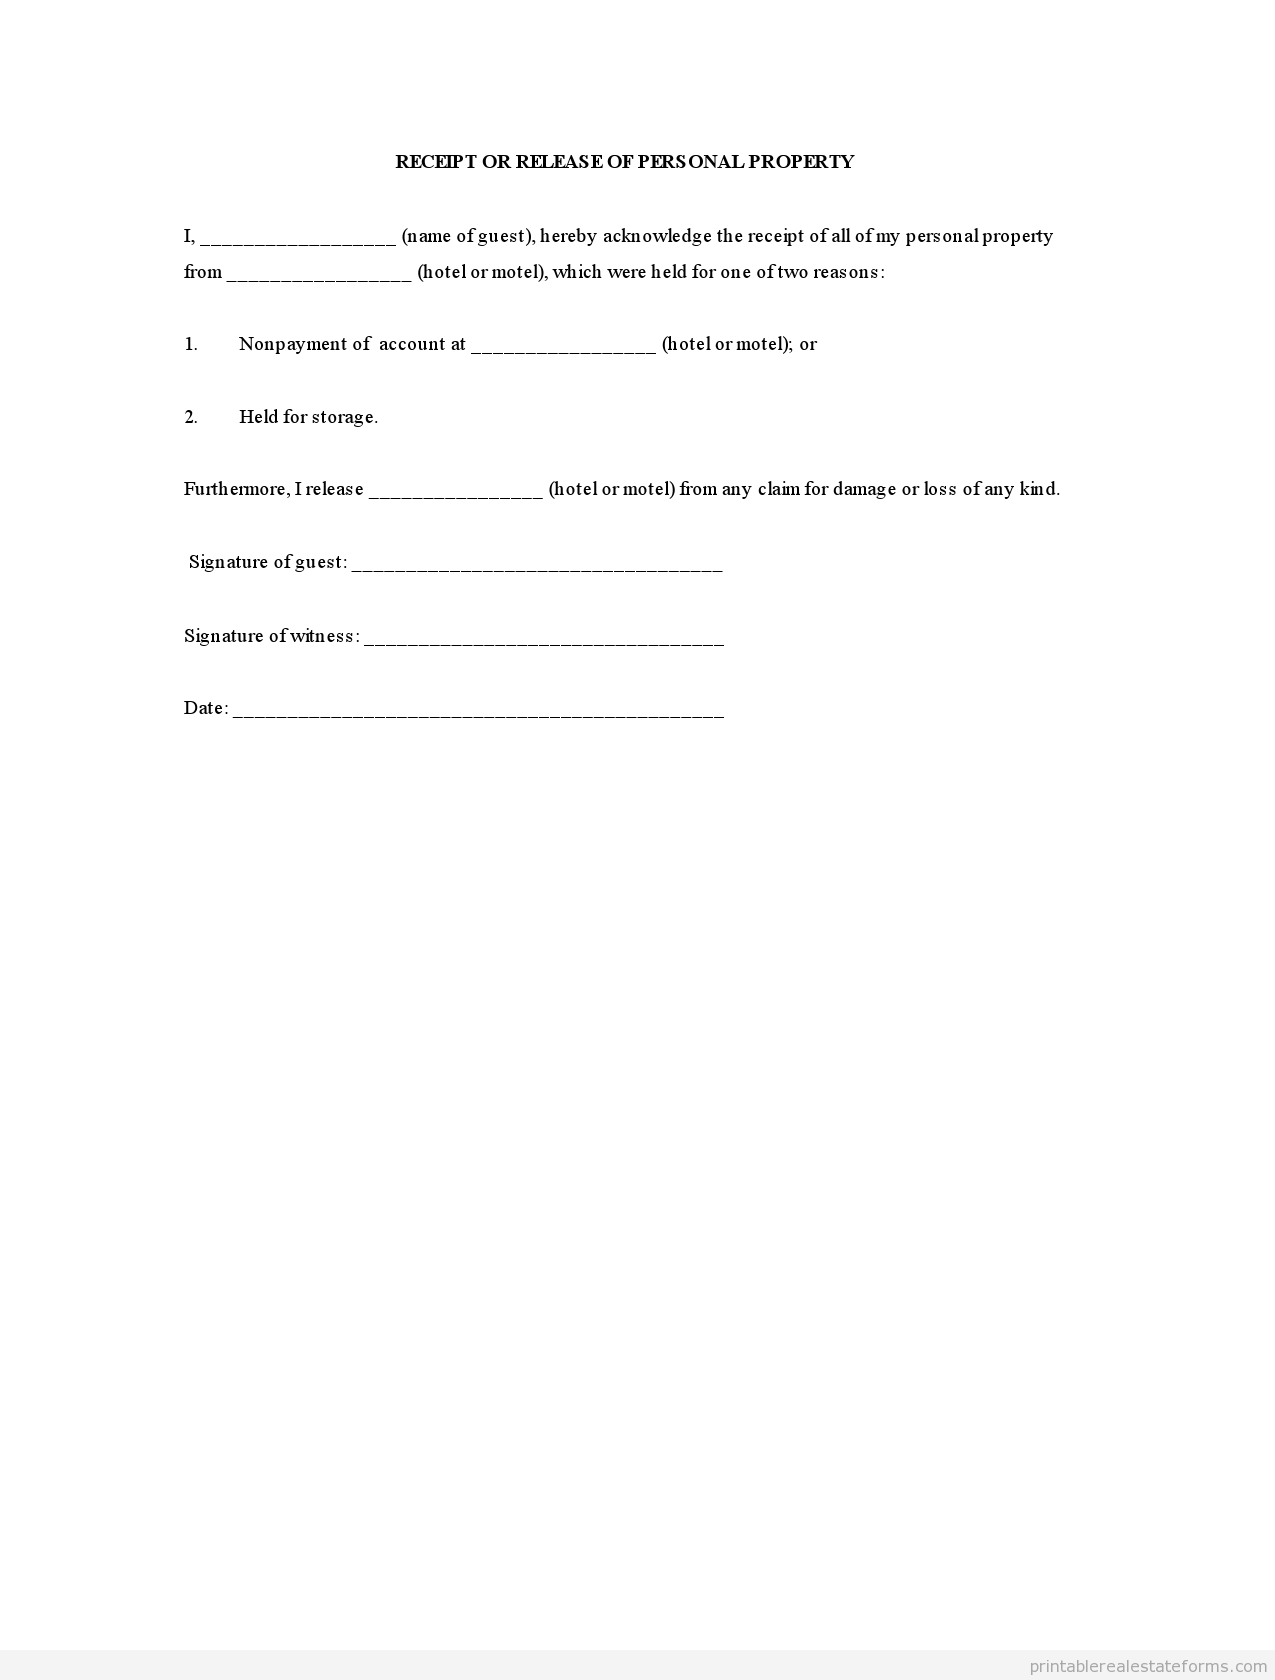 Sample Printable Receipt Or Release Of Personal Property Form